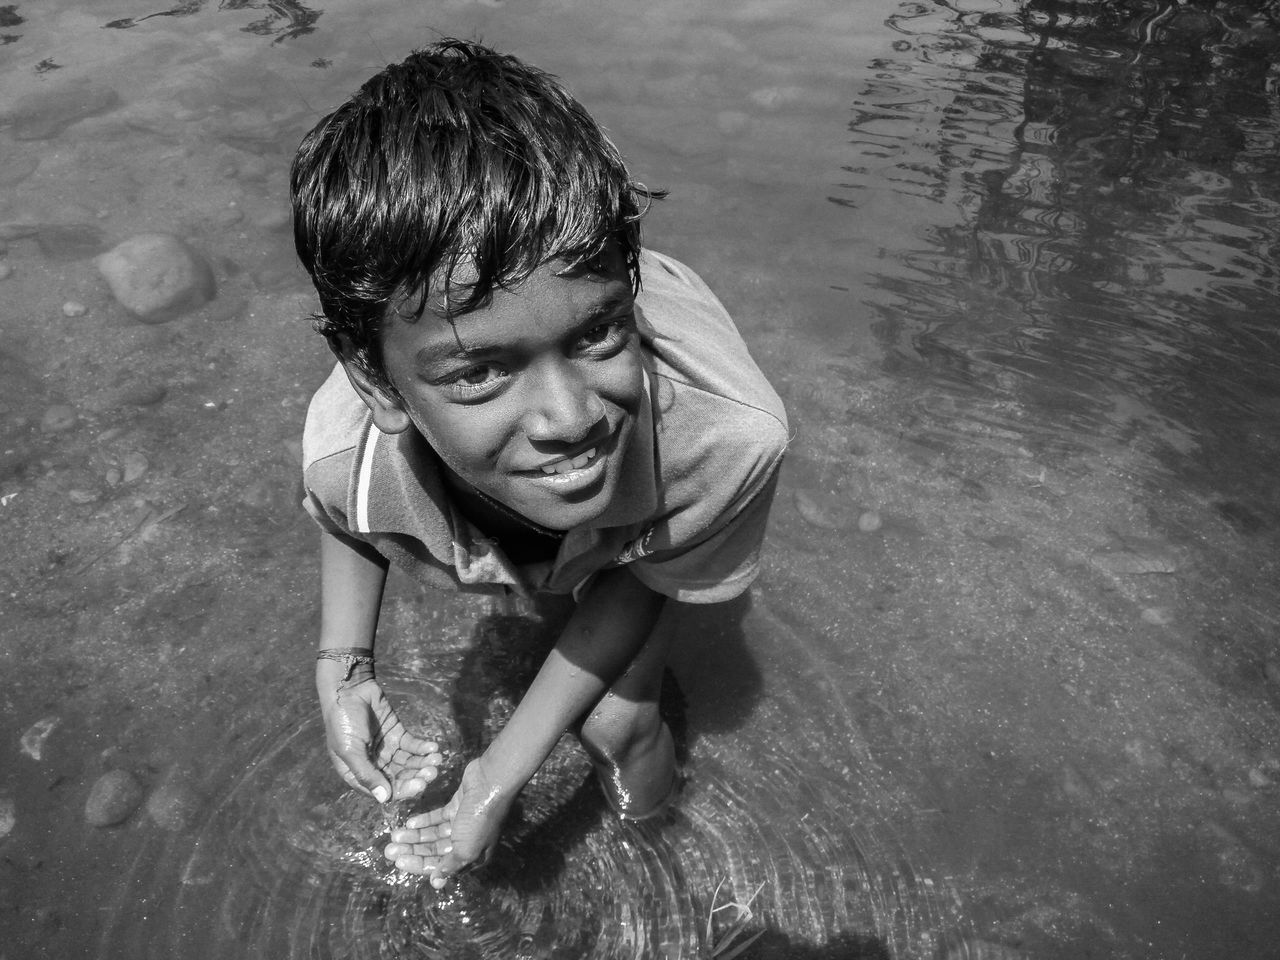 Blackandwhite Bnw Boys Child Childhood Day Elementary Age Full Length High Angle View Lifestyles Nature One Boy Only One Person Outdoors People Portrait Real People Swimming The Week On EyeEm Water